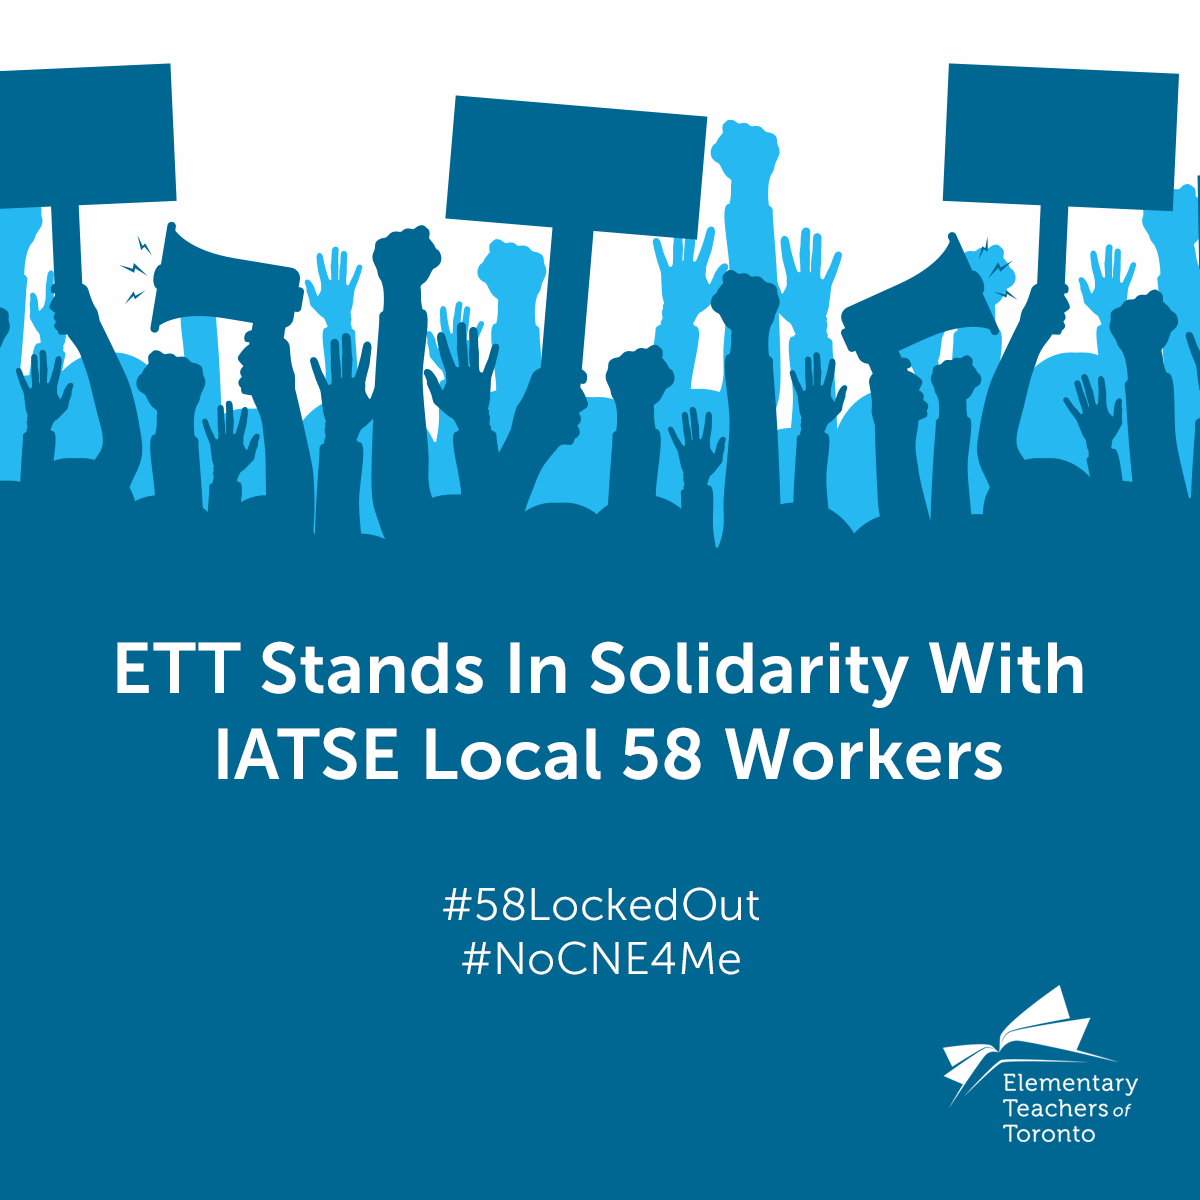 ETT Stands In Solidarity With IATSE Local 58 Workers